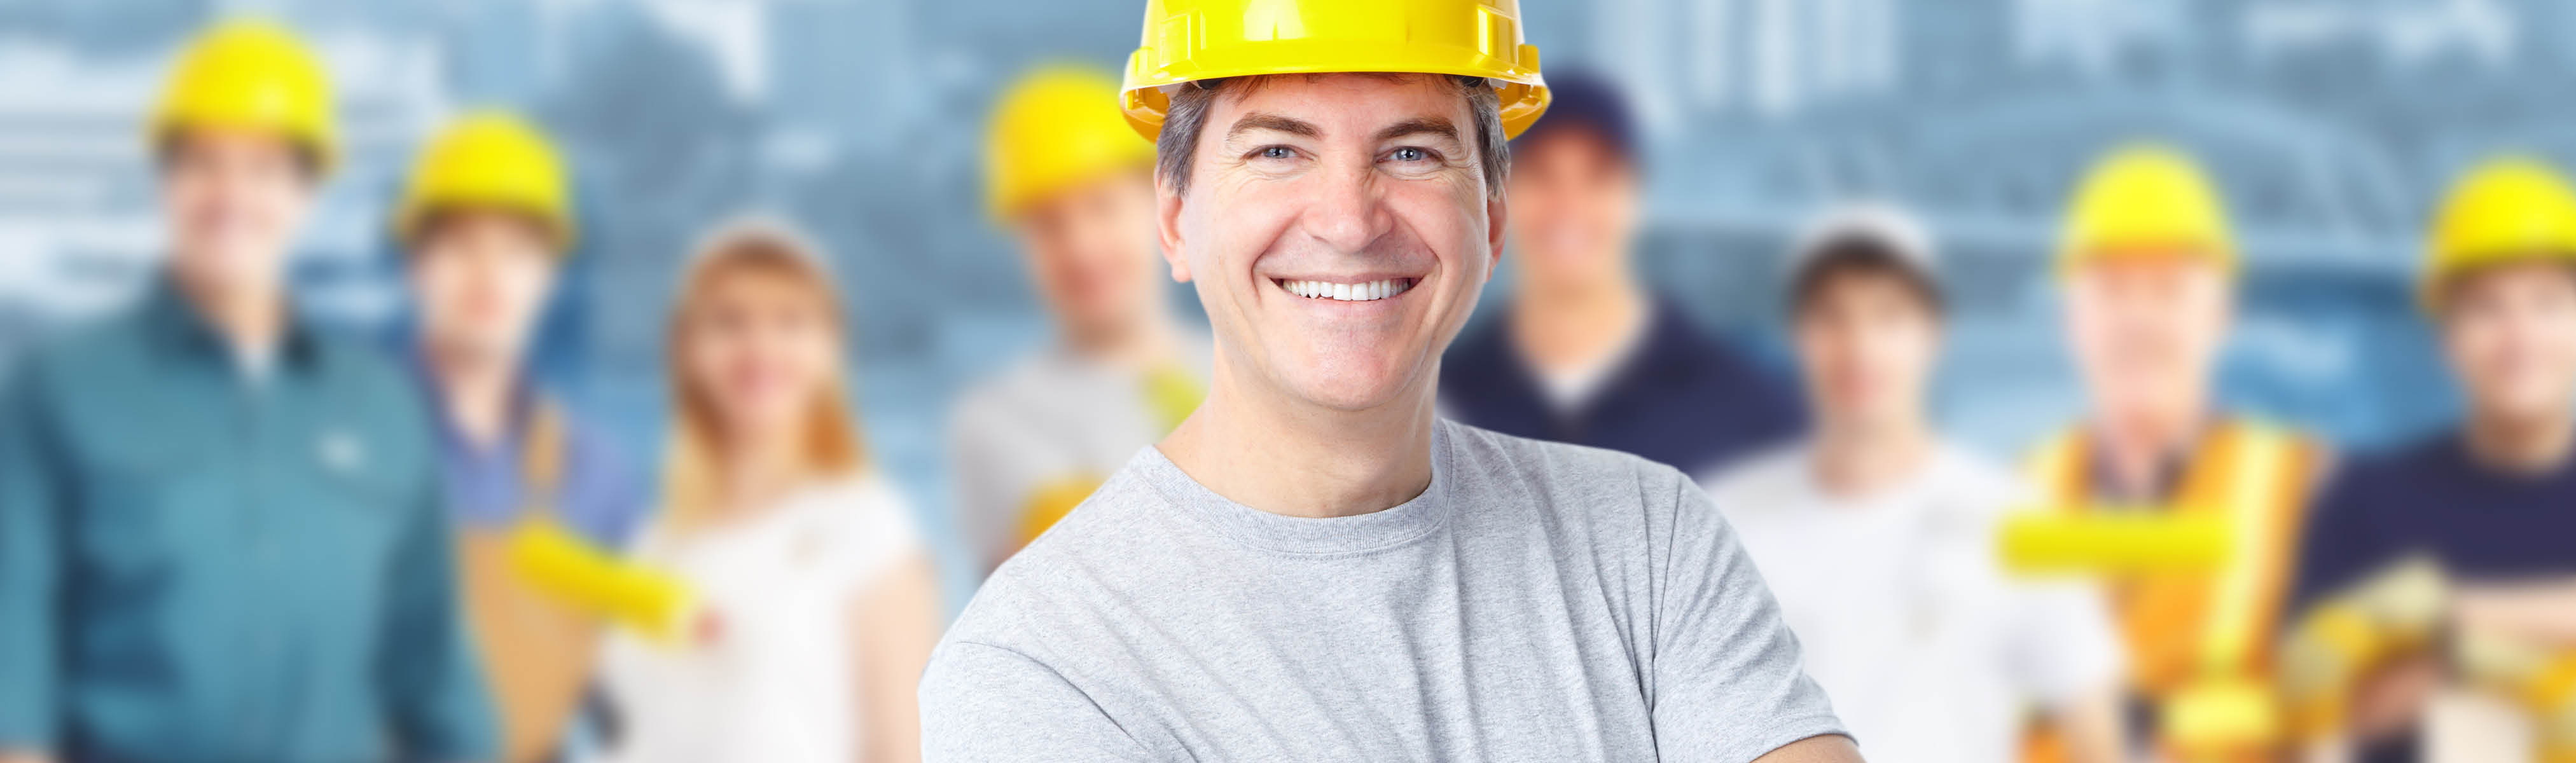 certificate in building and construction